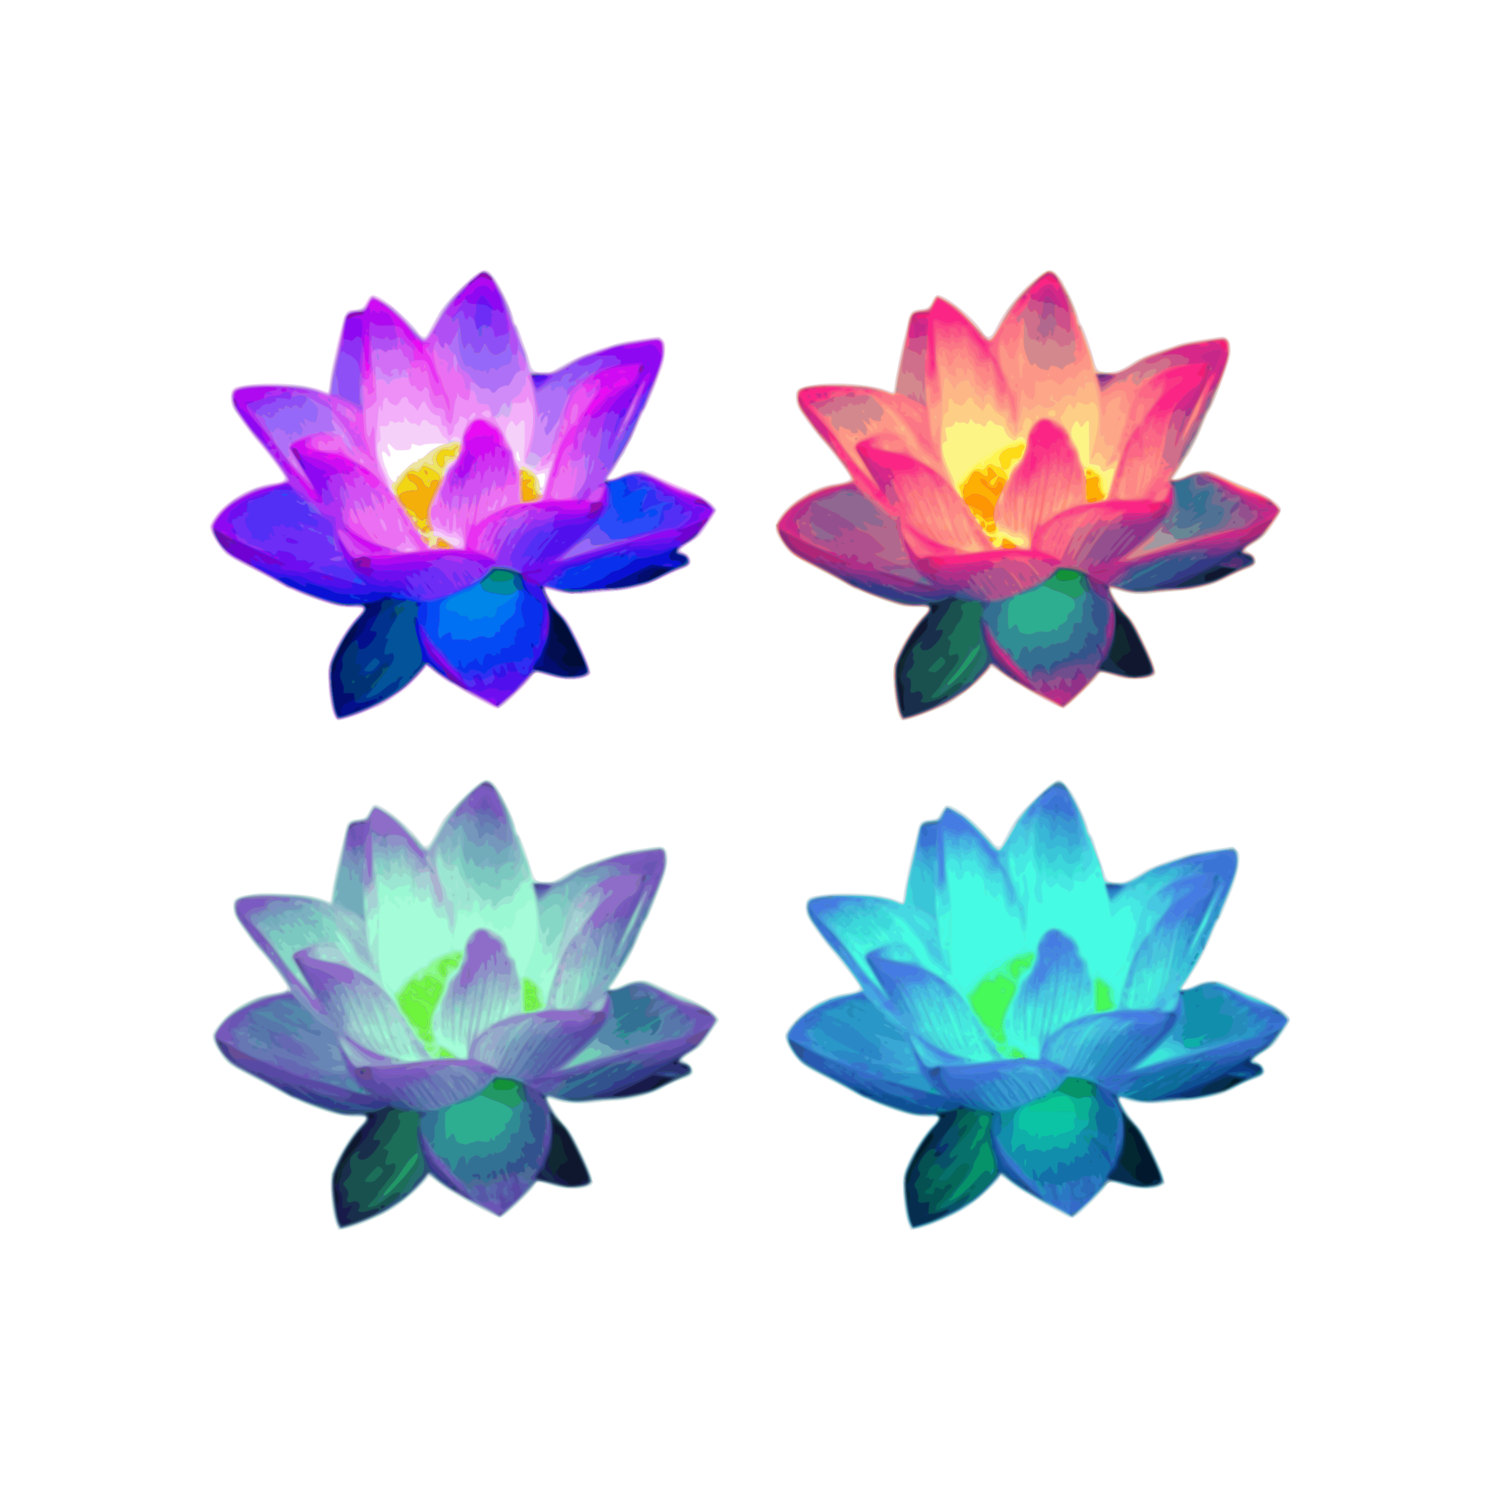 1500x1500 Lotus Flower Clip Art Lotus Flowers Lotus Clipart Lotus